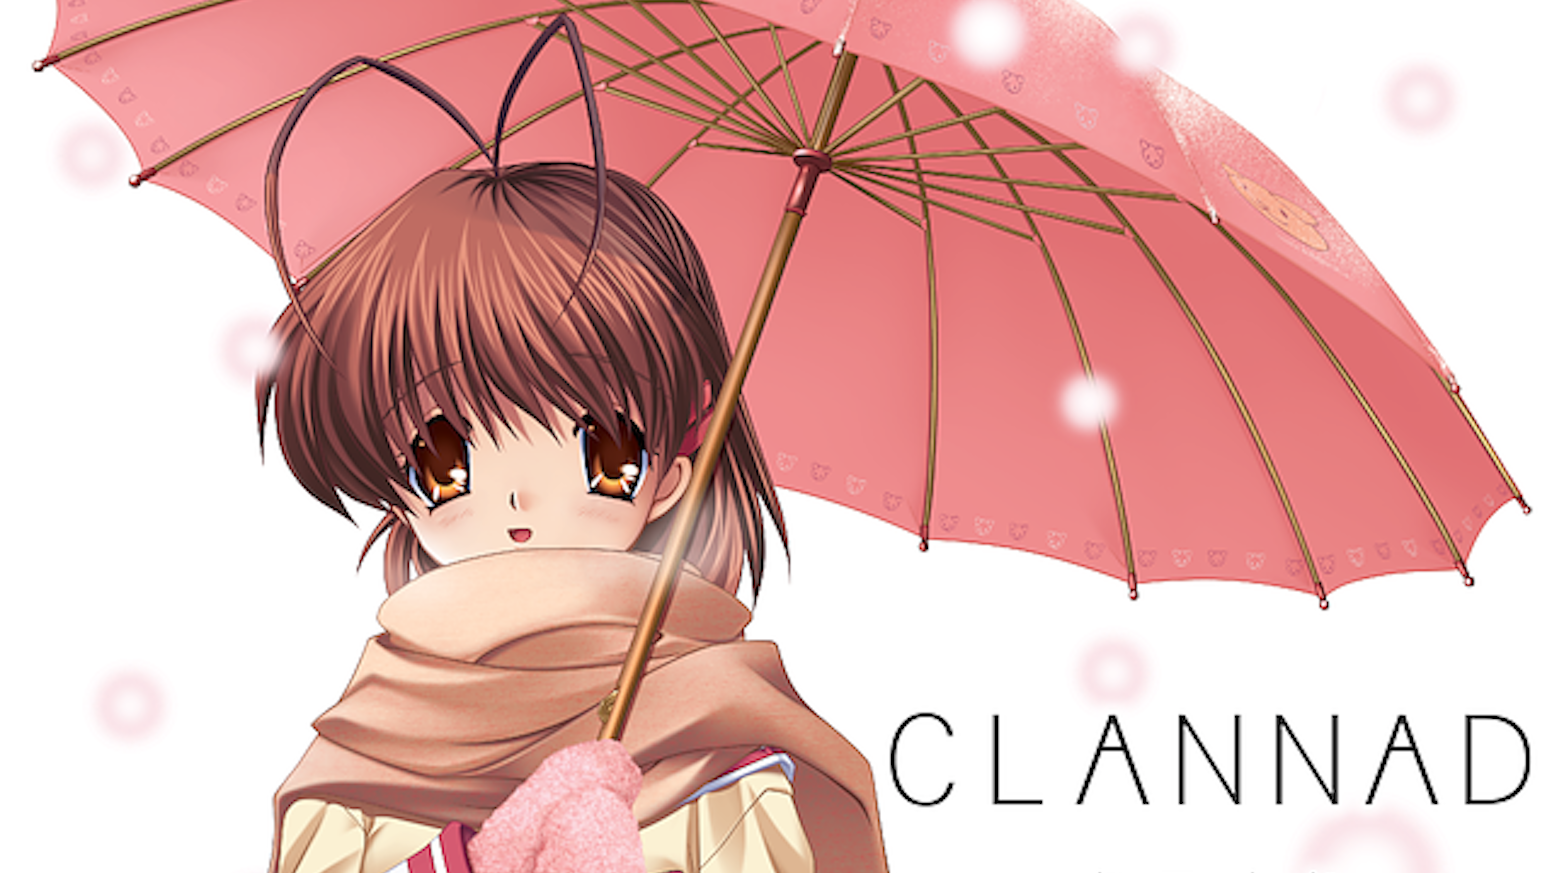 Key's classic visual novel, CLANNAD, is now available through Steam!